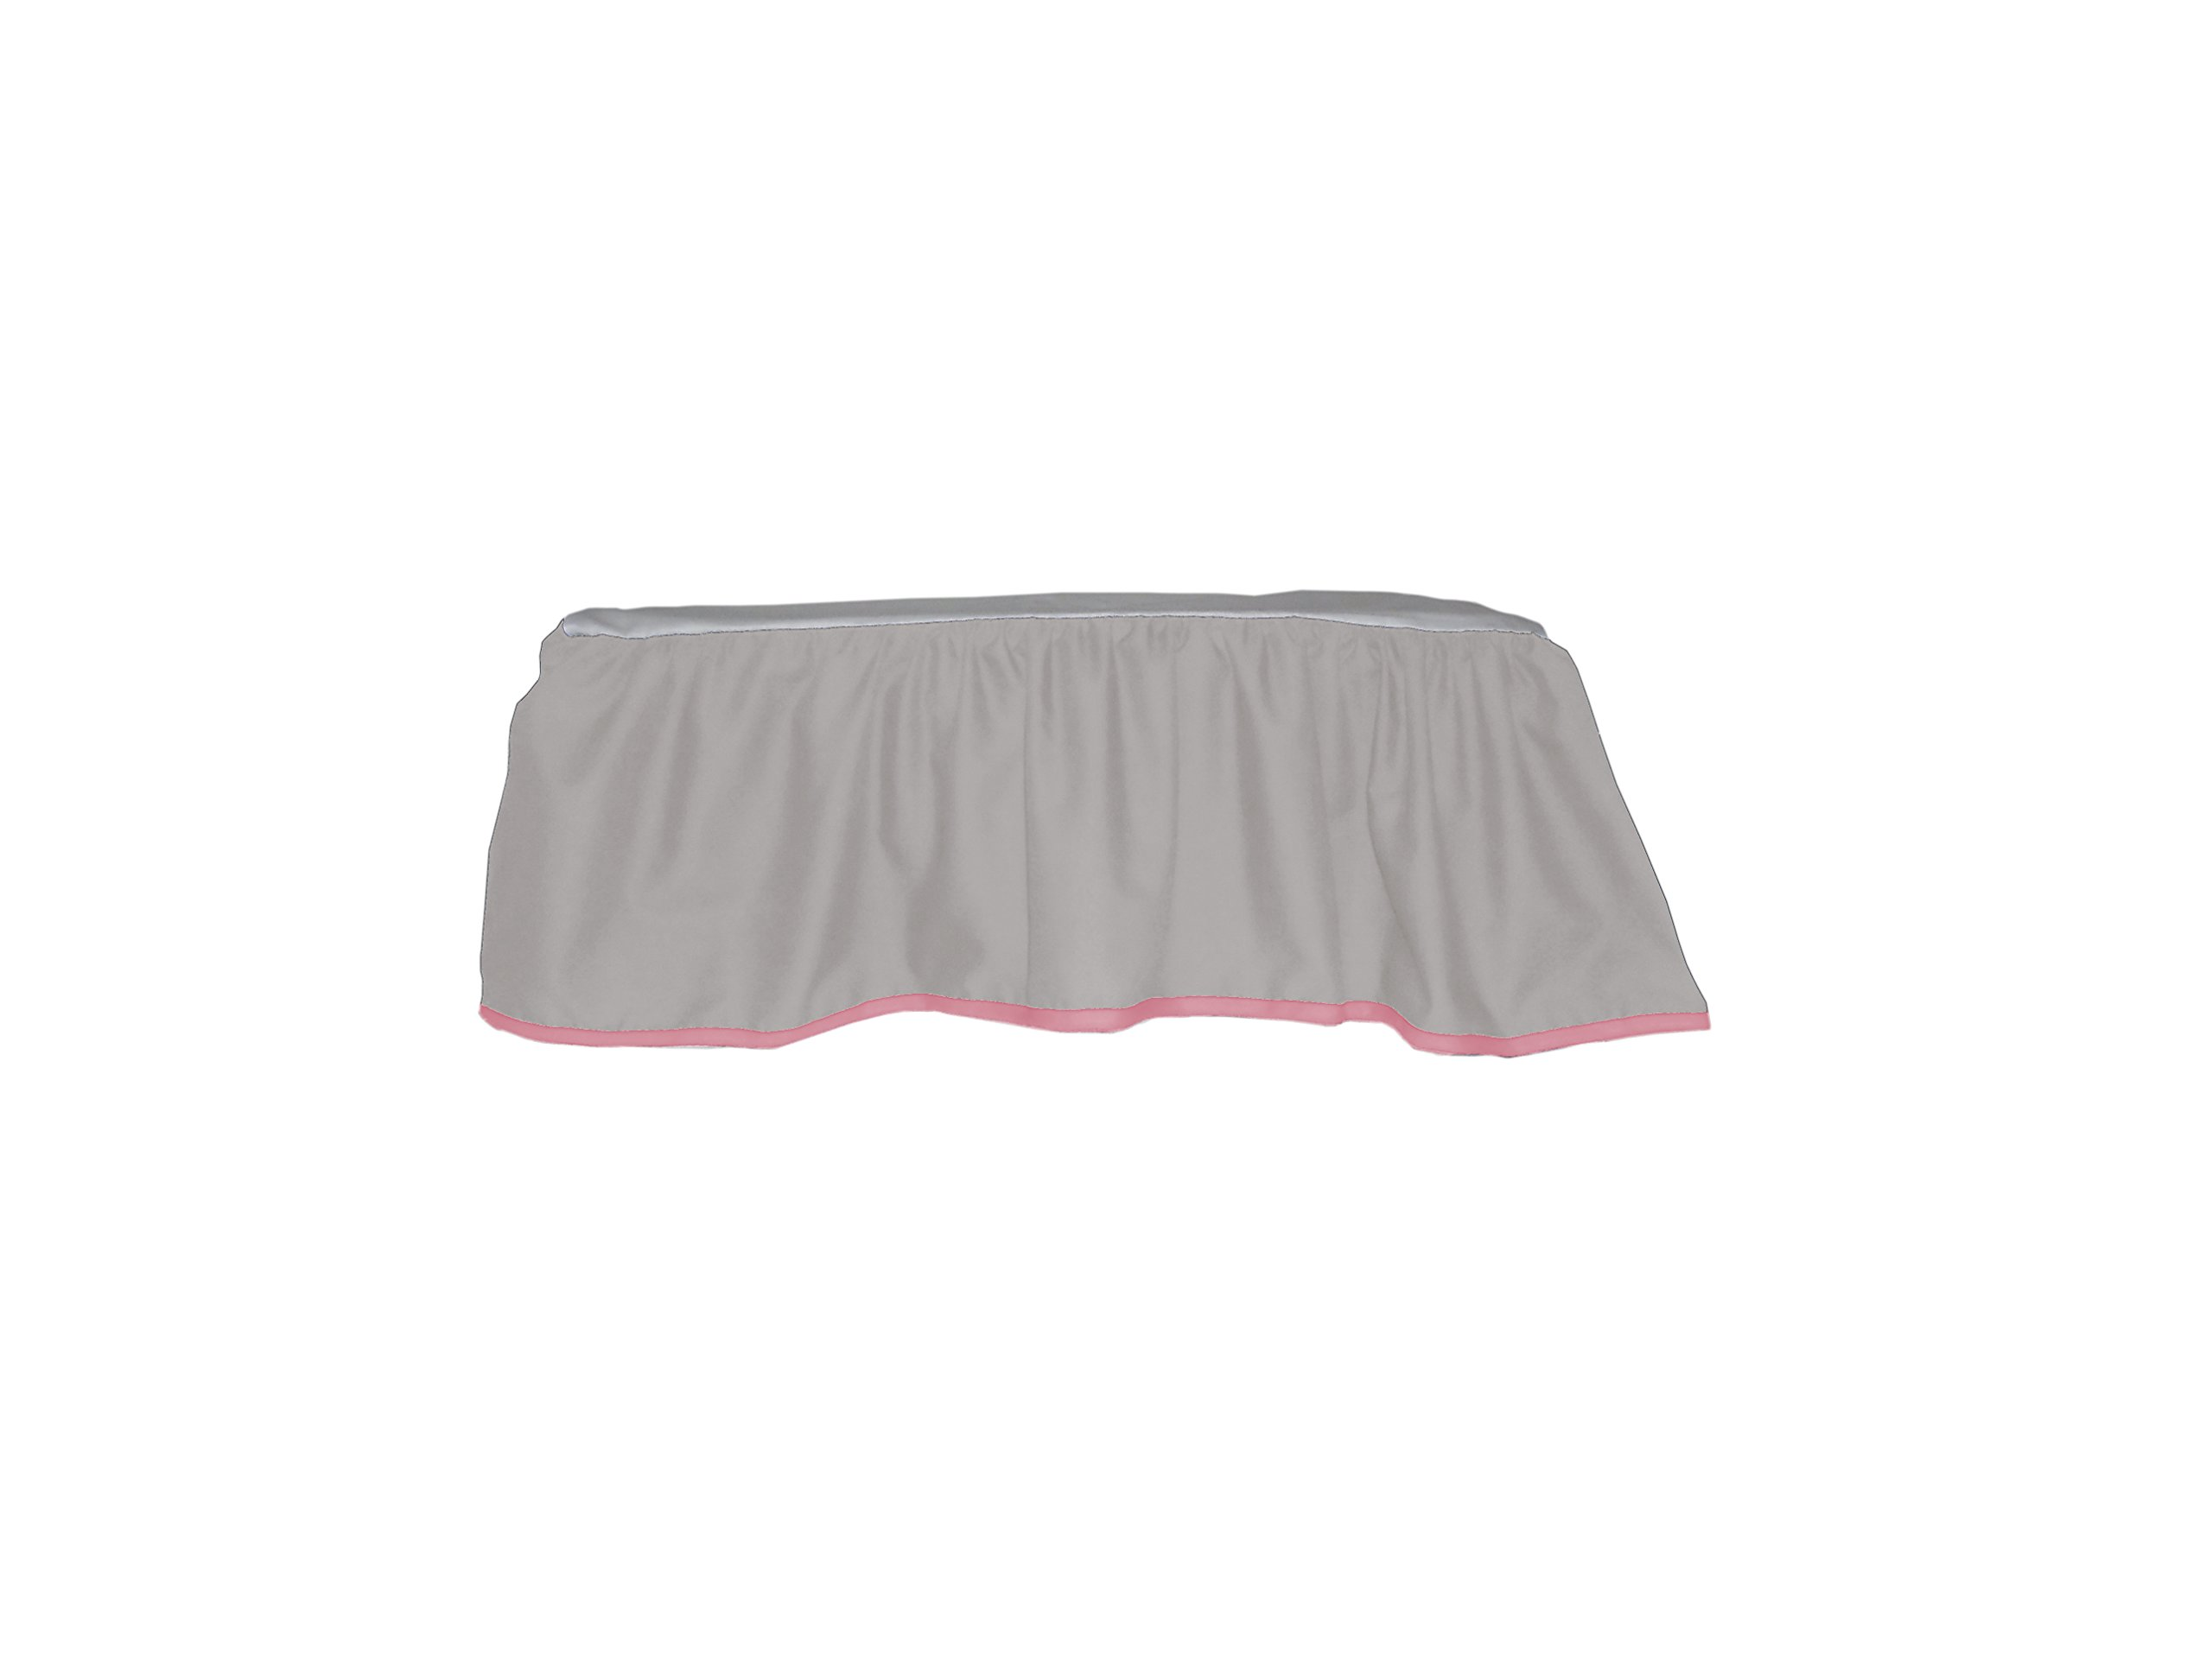 Baby Doll Bedding Solid Two tone Crib Skirt/ Dust Ruffle, Grey/Pink